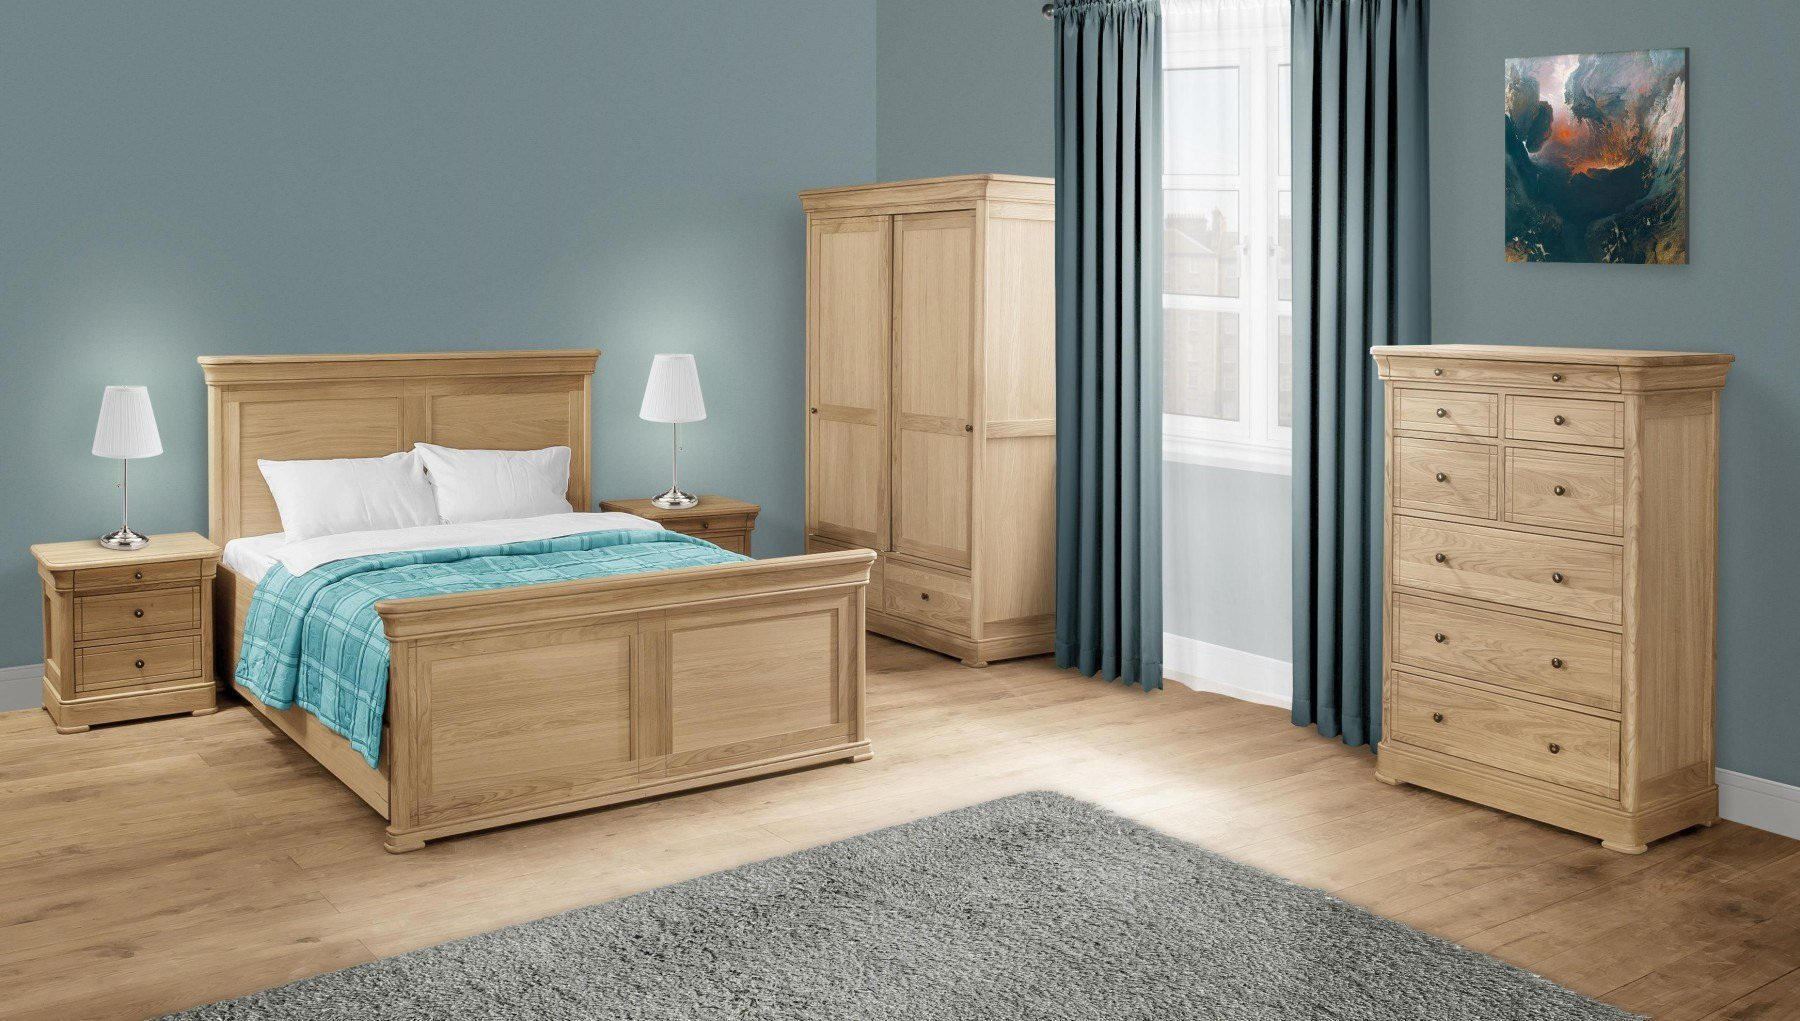 Best Carpets Beds And Furniture From John Doe Of Diss For All With Pictures